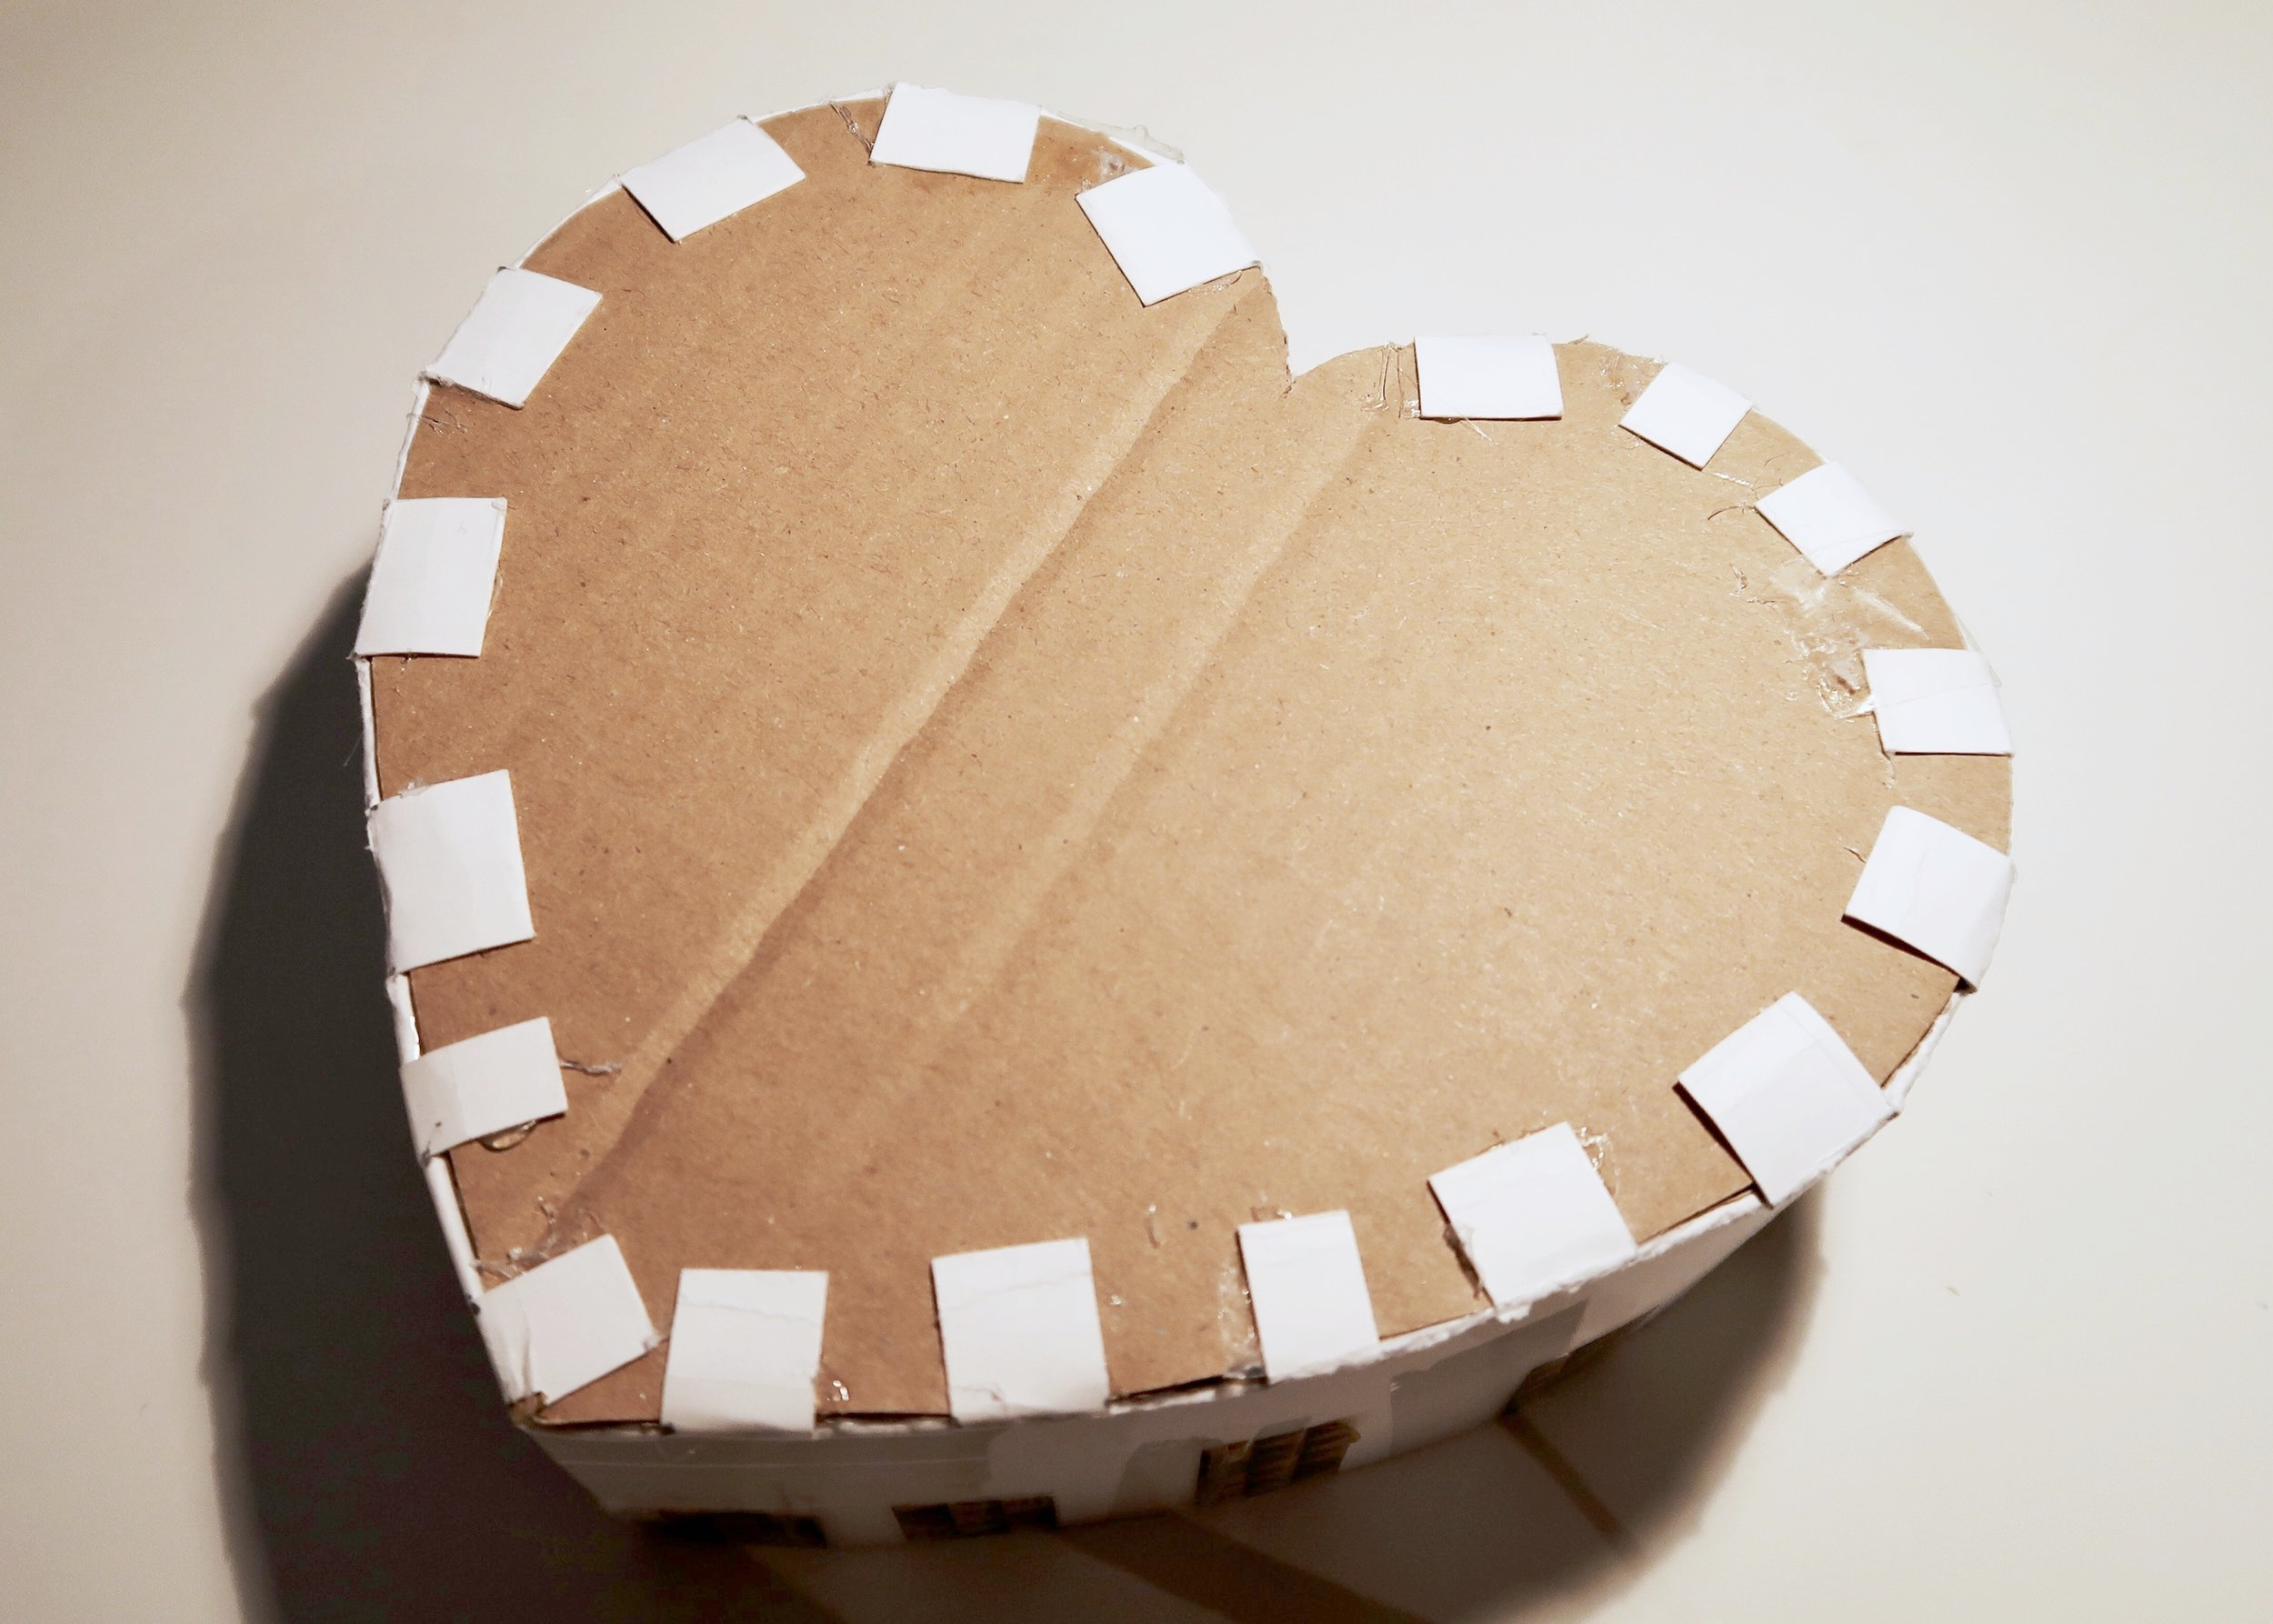 5. - Add hot glue to the tabs facing inwards, and glue the second cardboard heart on top of these. Now fold the remaining tabs towards the centre of the heart and using glue secure these to the top of the cardboard heart.